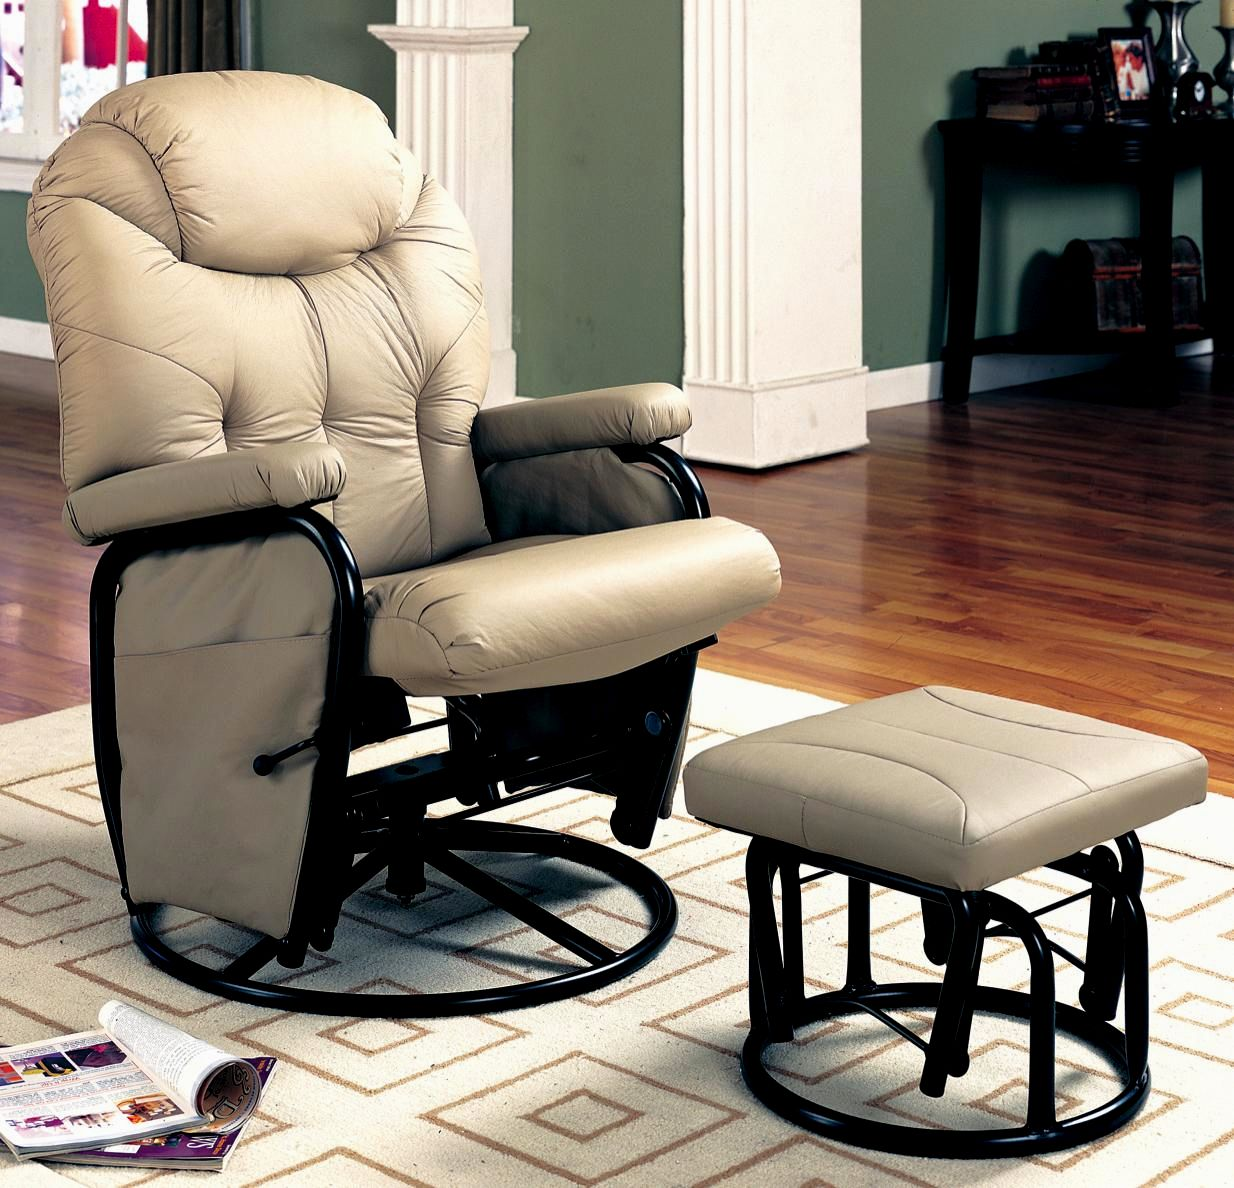 excellent foldable sofa chair plan-Terrific Foldable sofa Chair Model